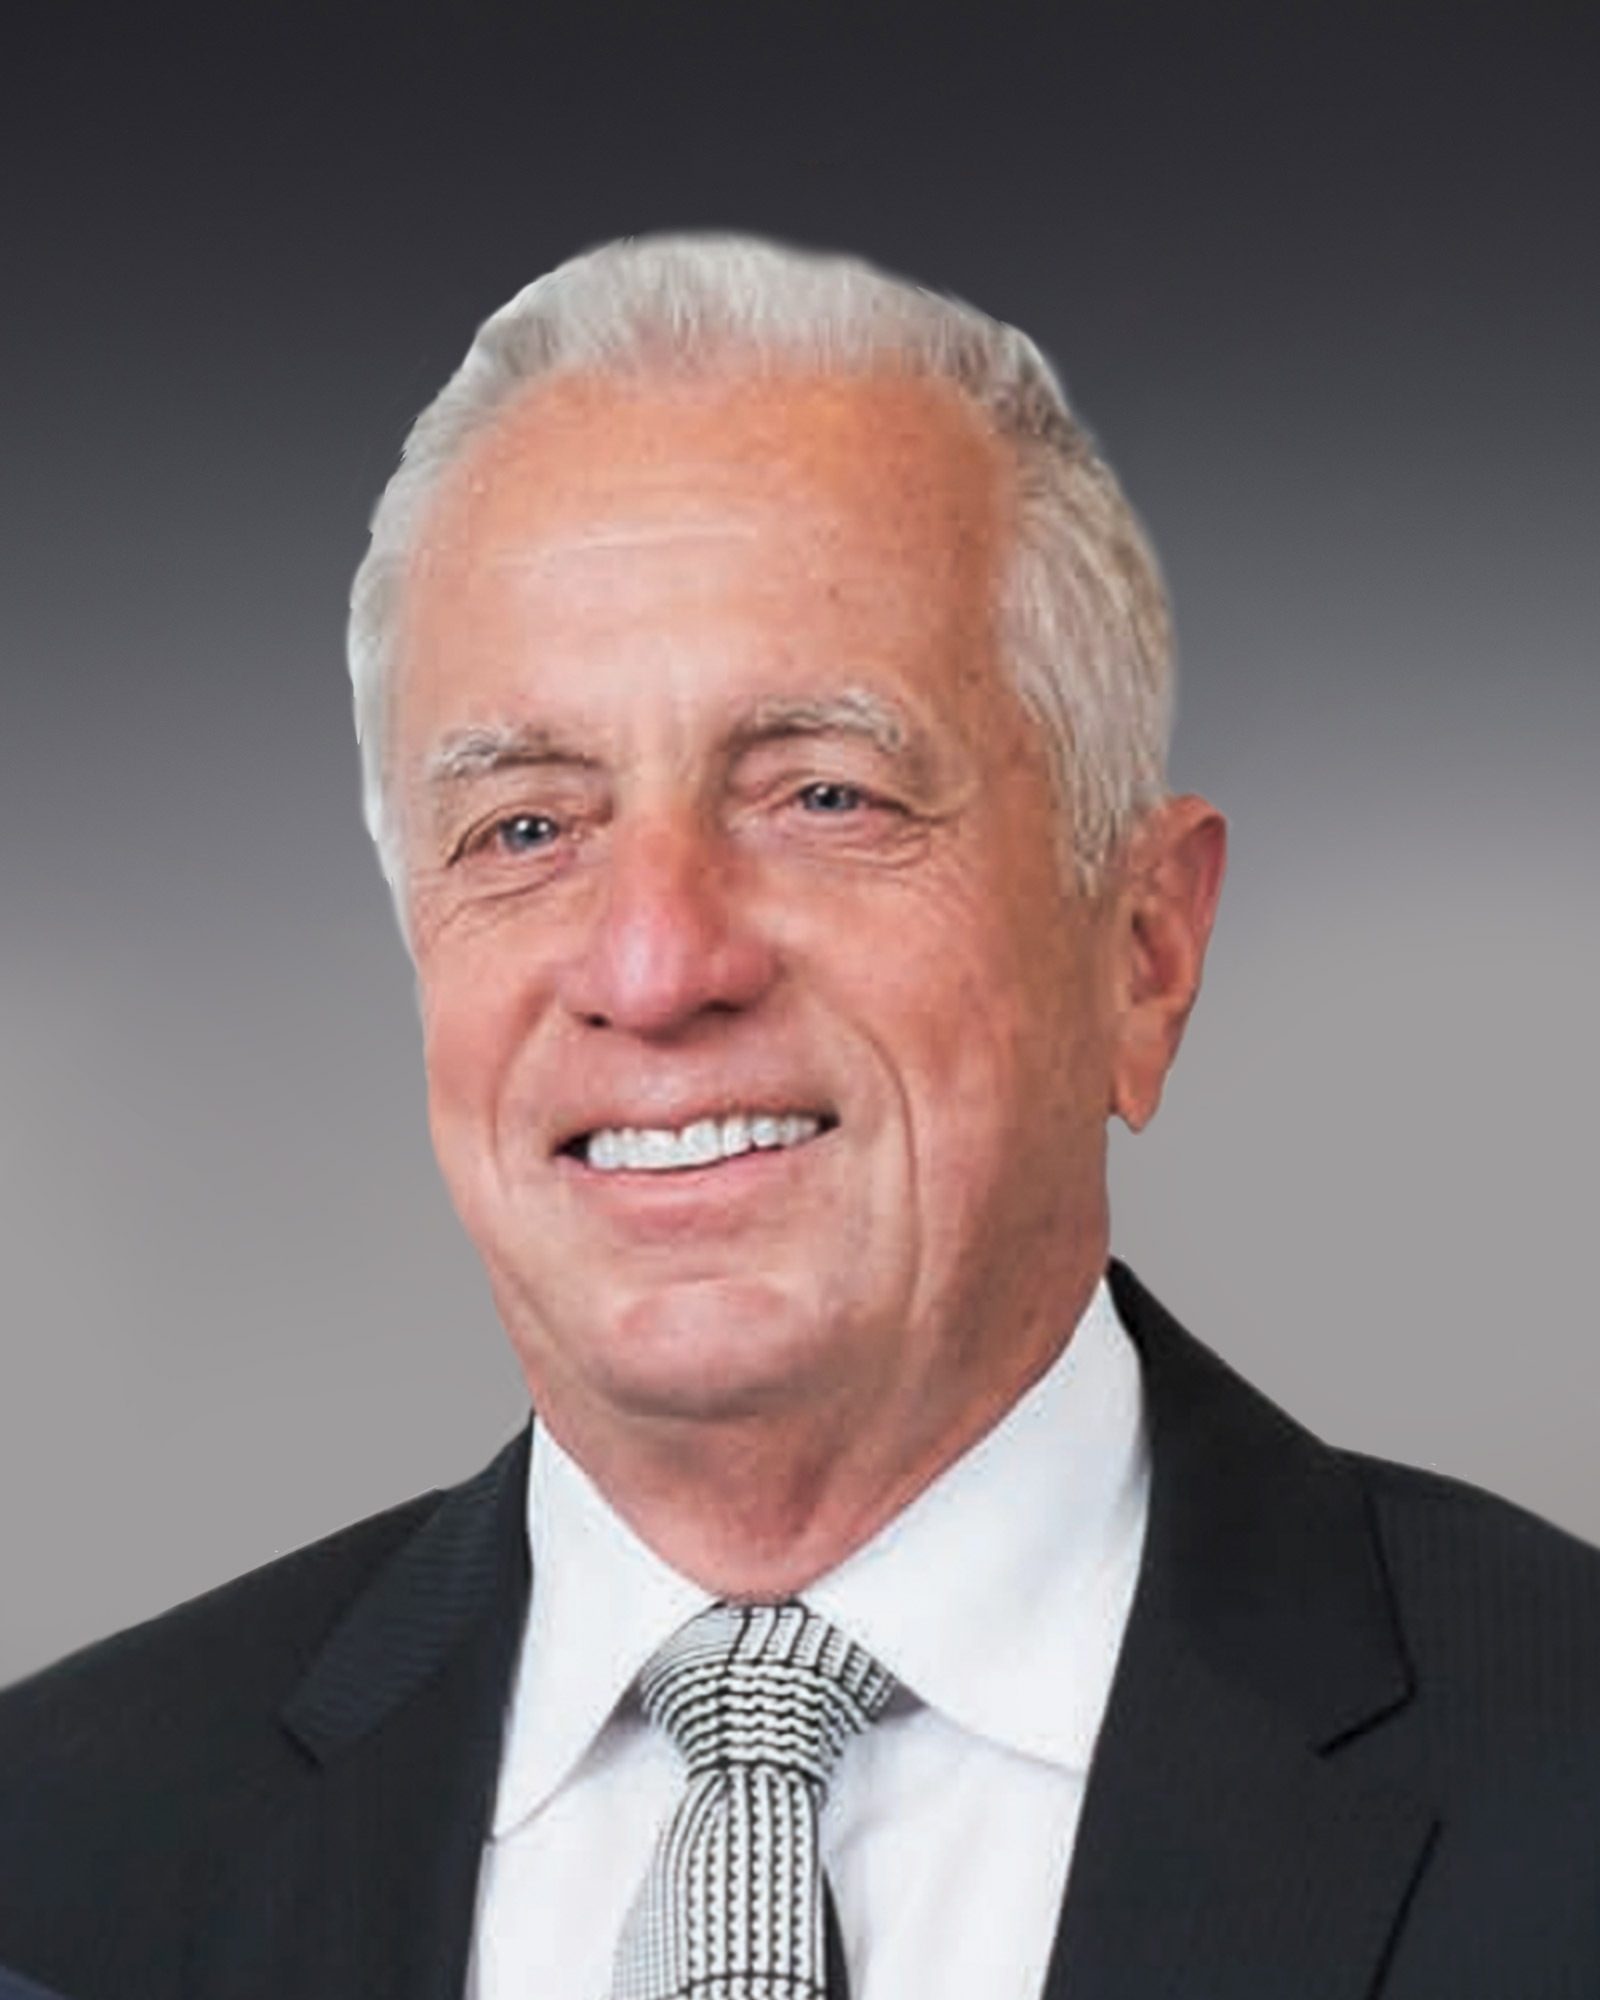 Headshot of Epcon Management Team: Co-founder and President Phil Fankhauser